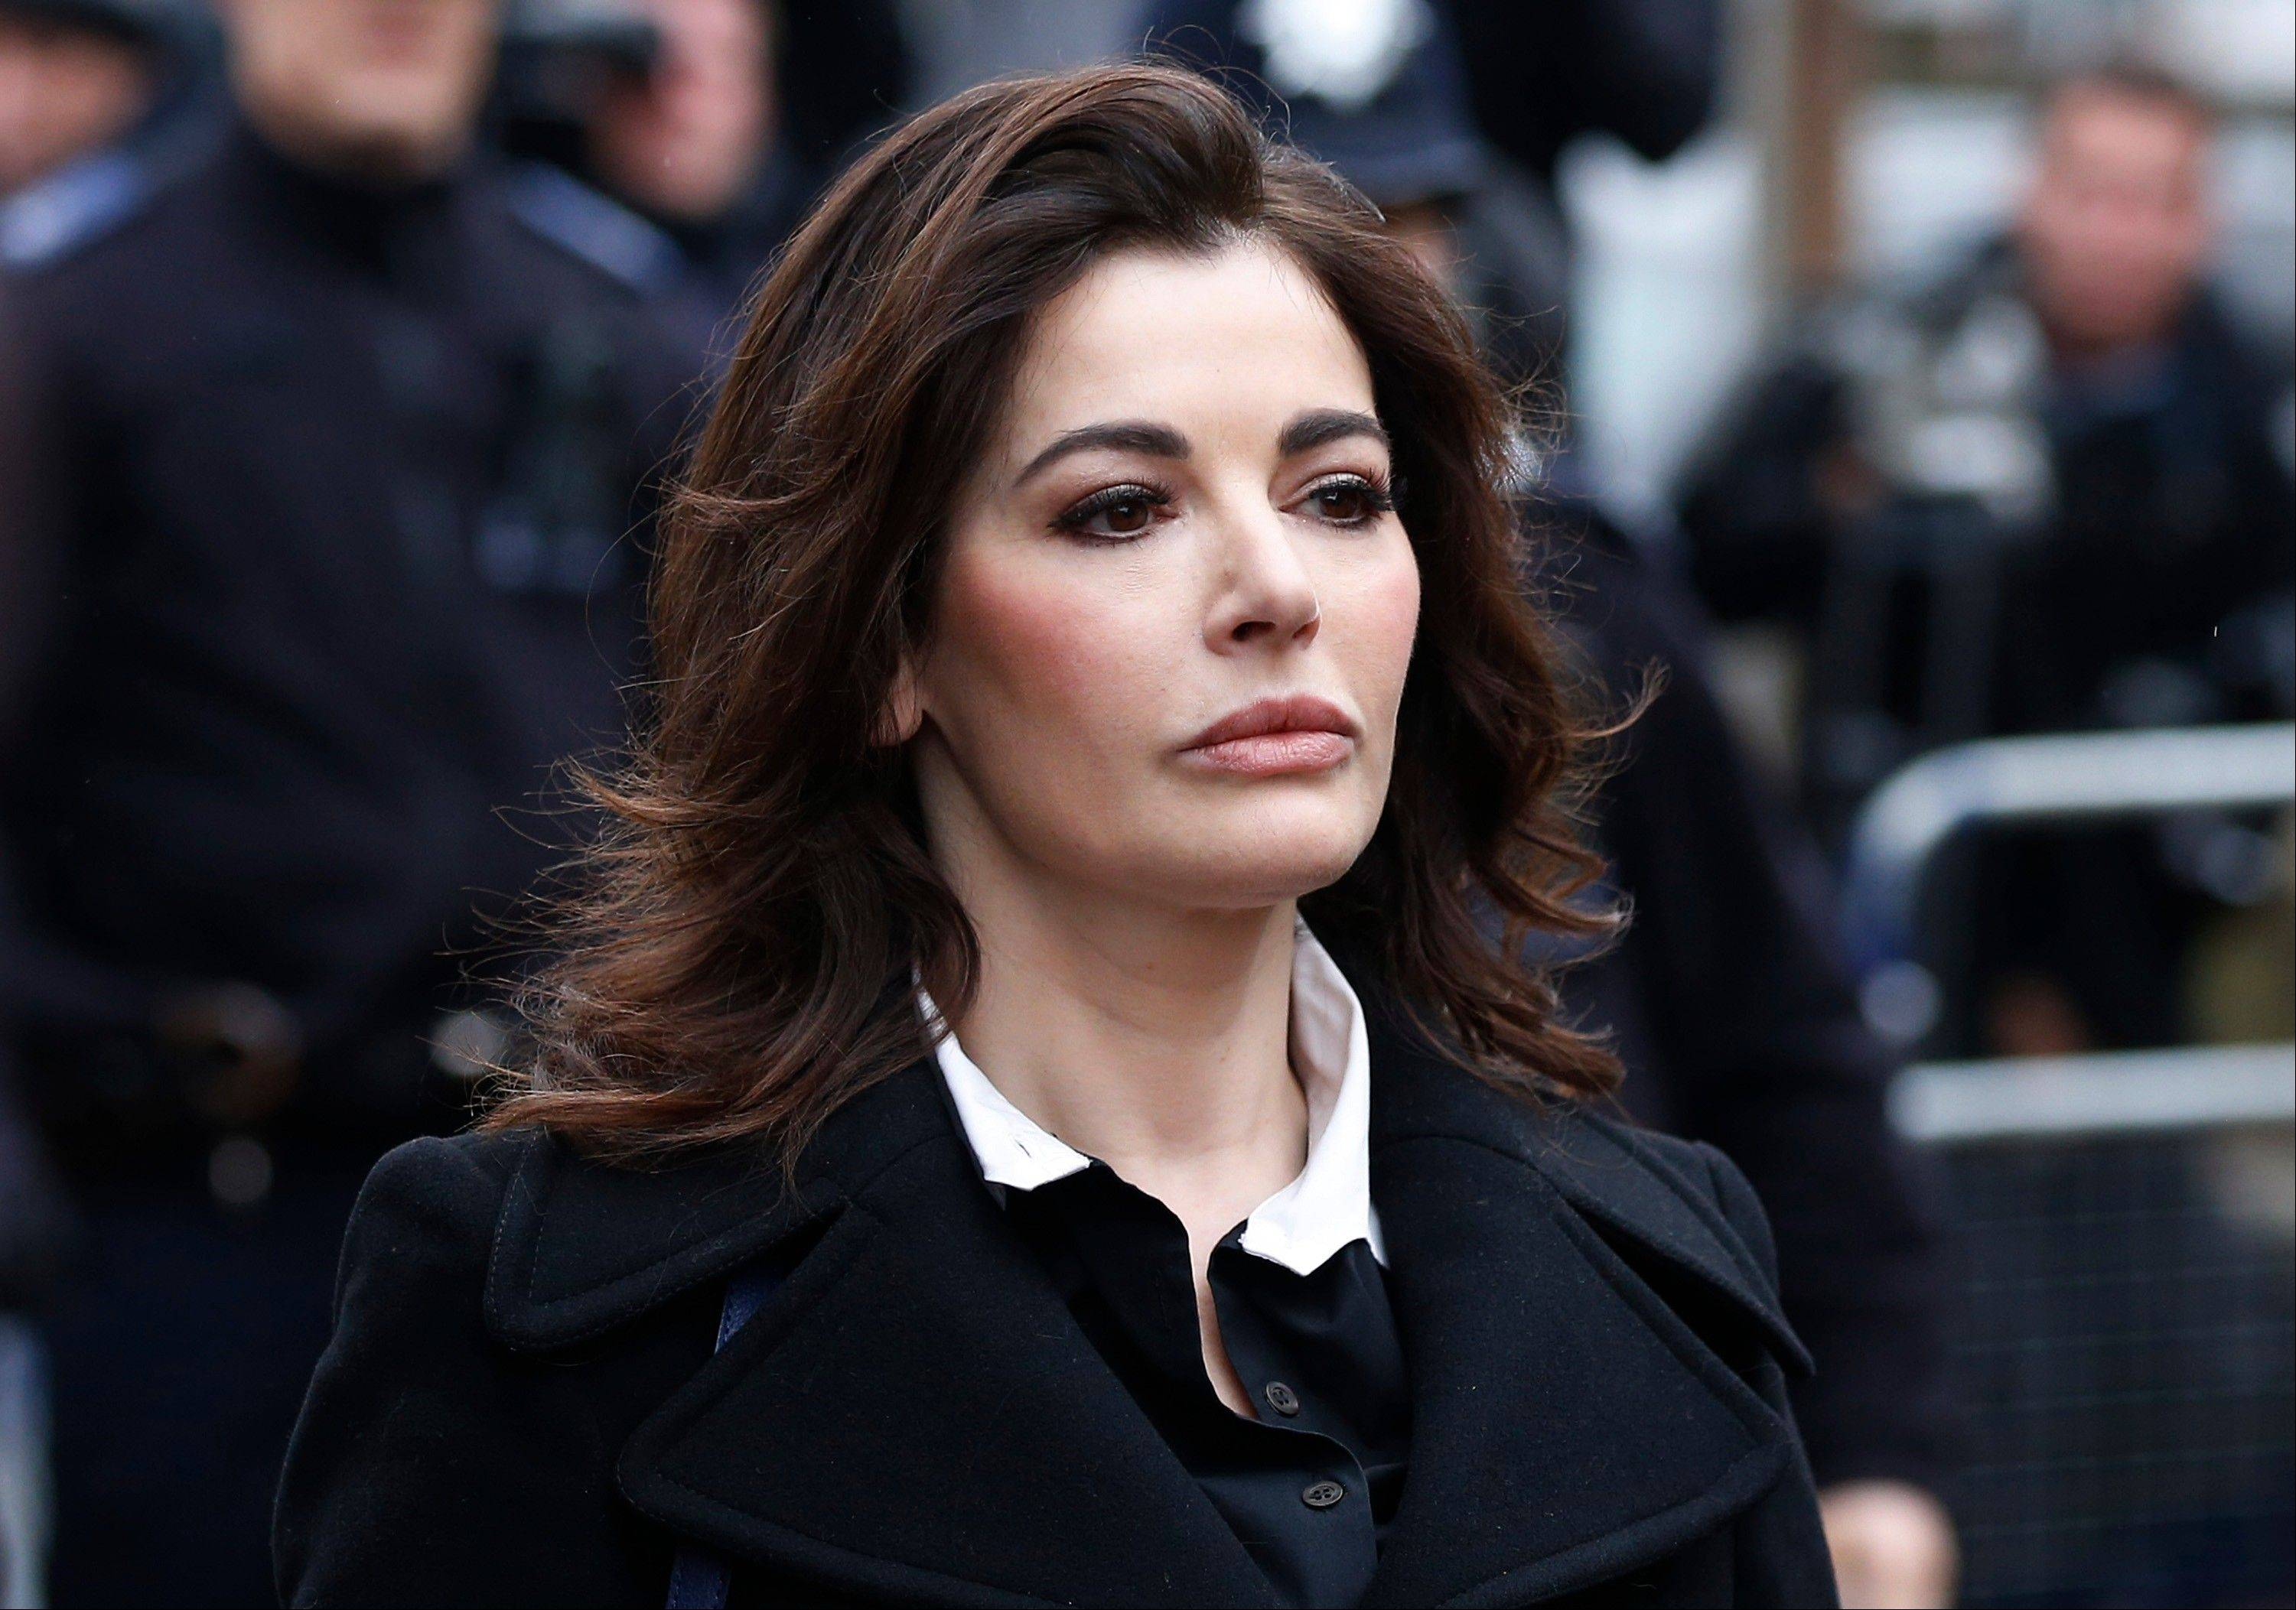 Two former assistants to Nigella Lawson and her former husband were acquitted of fraud Friday, Dec. 20, 2013 in London, capping a case where allegations of unauthorized spending on lavish goods were often overshadowed by titillating glimpses into the celebrity chef's troubled home life.